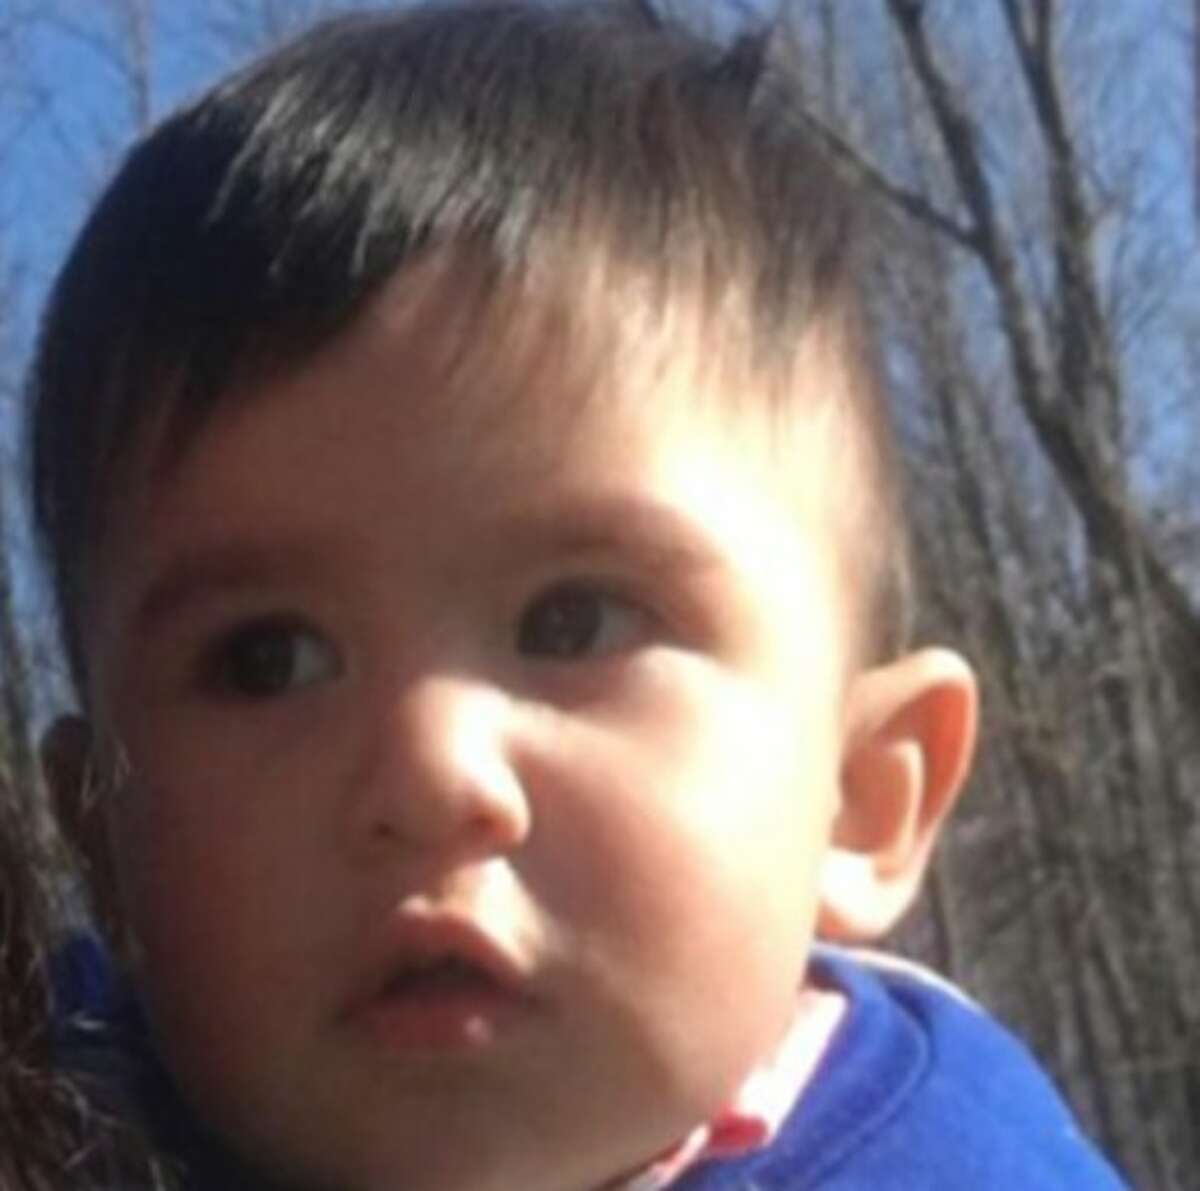 Owen Hidalgo-Calderon, age 14 months, was abducted from Sodus, Wayne County, about 9:48 a.m. May 16, 2018, the Wayne County Sheriff's Department said. (Wayne County Sheriff's Department)